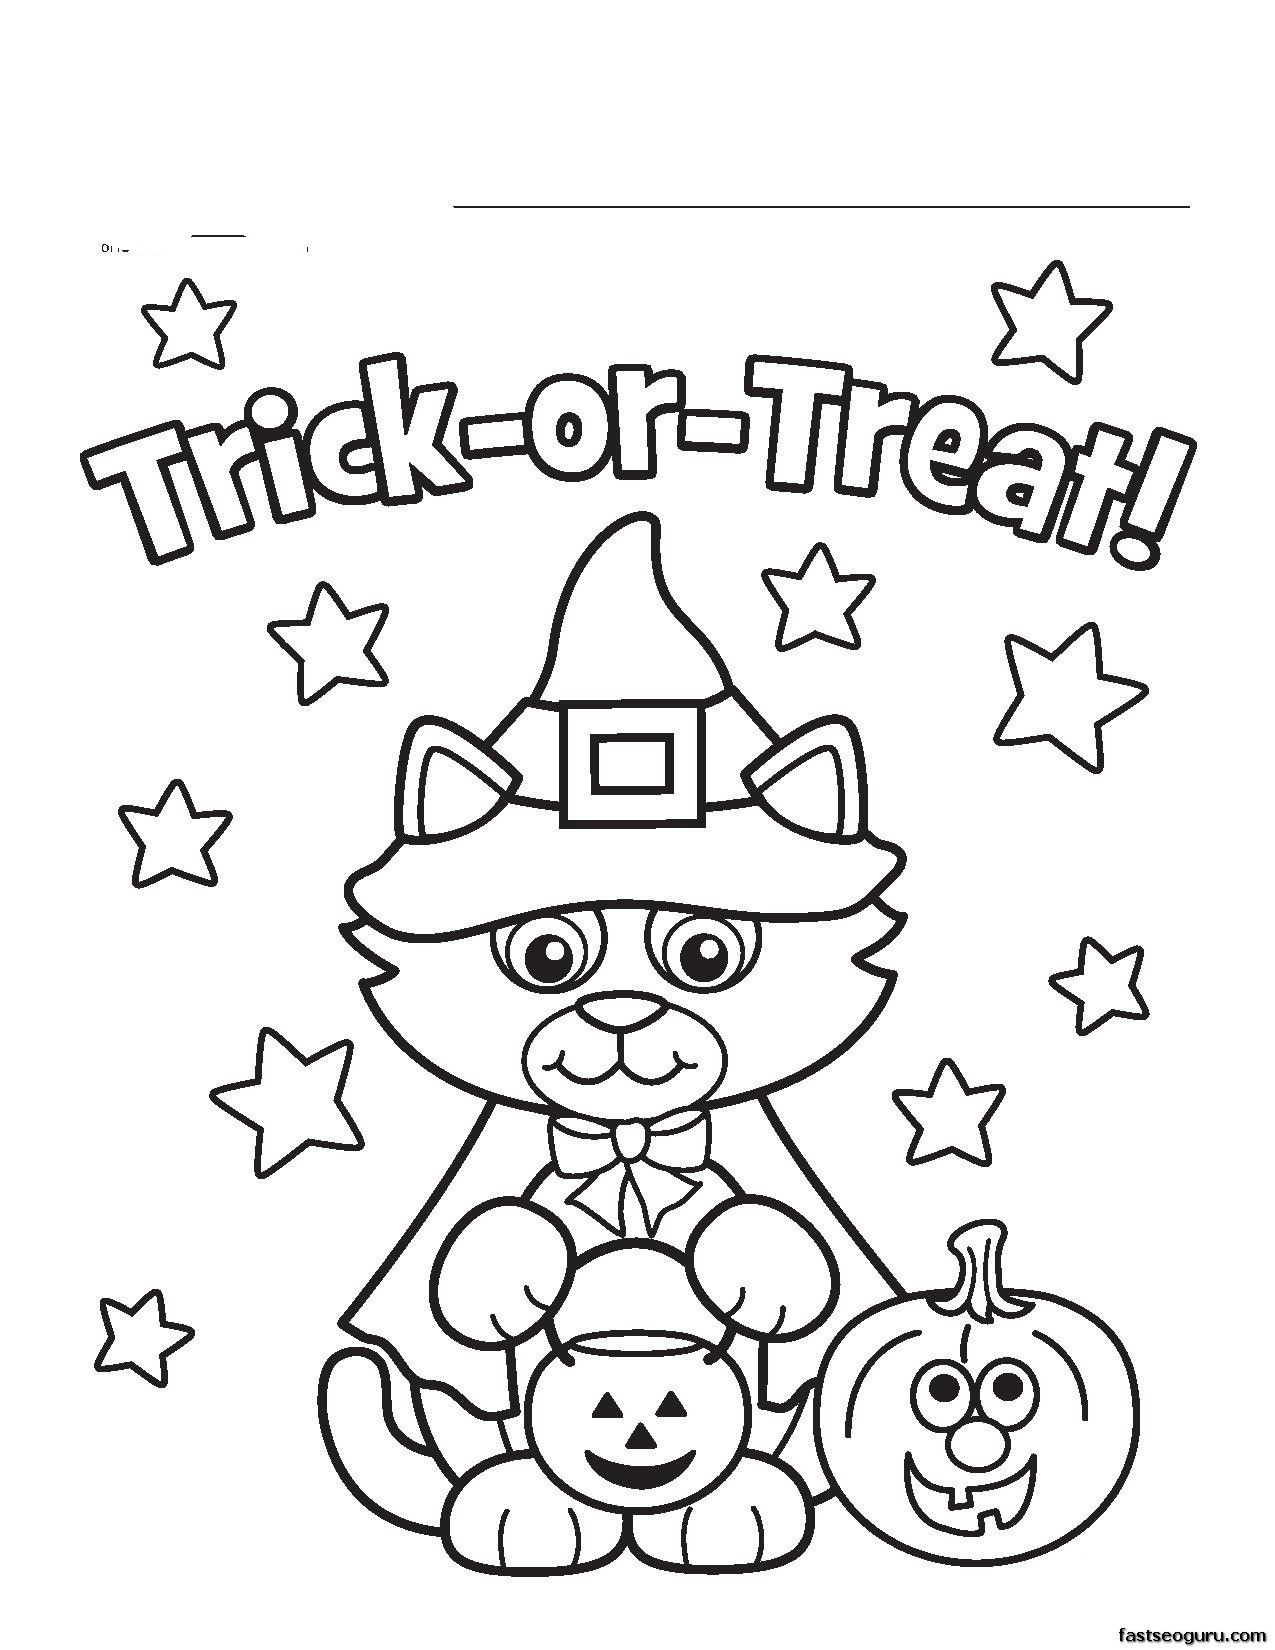 200+ Free Halloween Coloring Pages For Kids - The Suburban Mom | 1650x1275